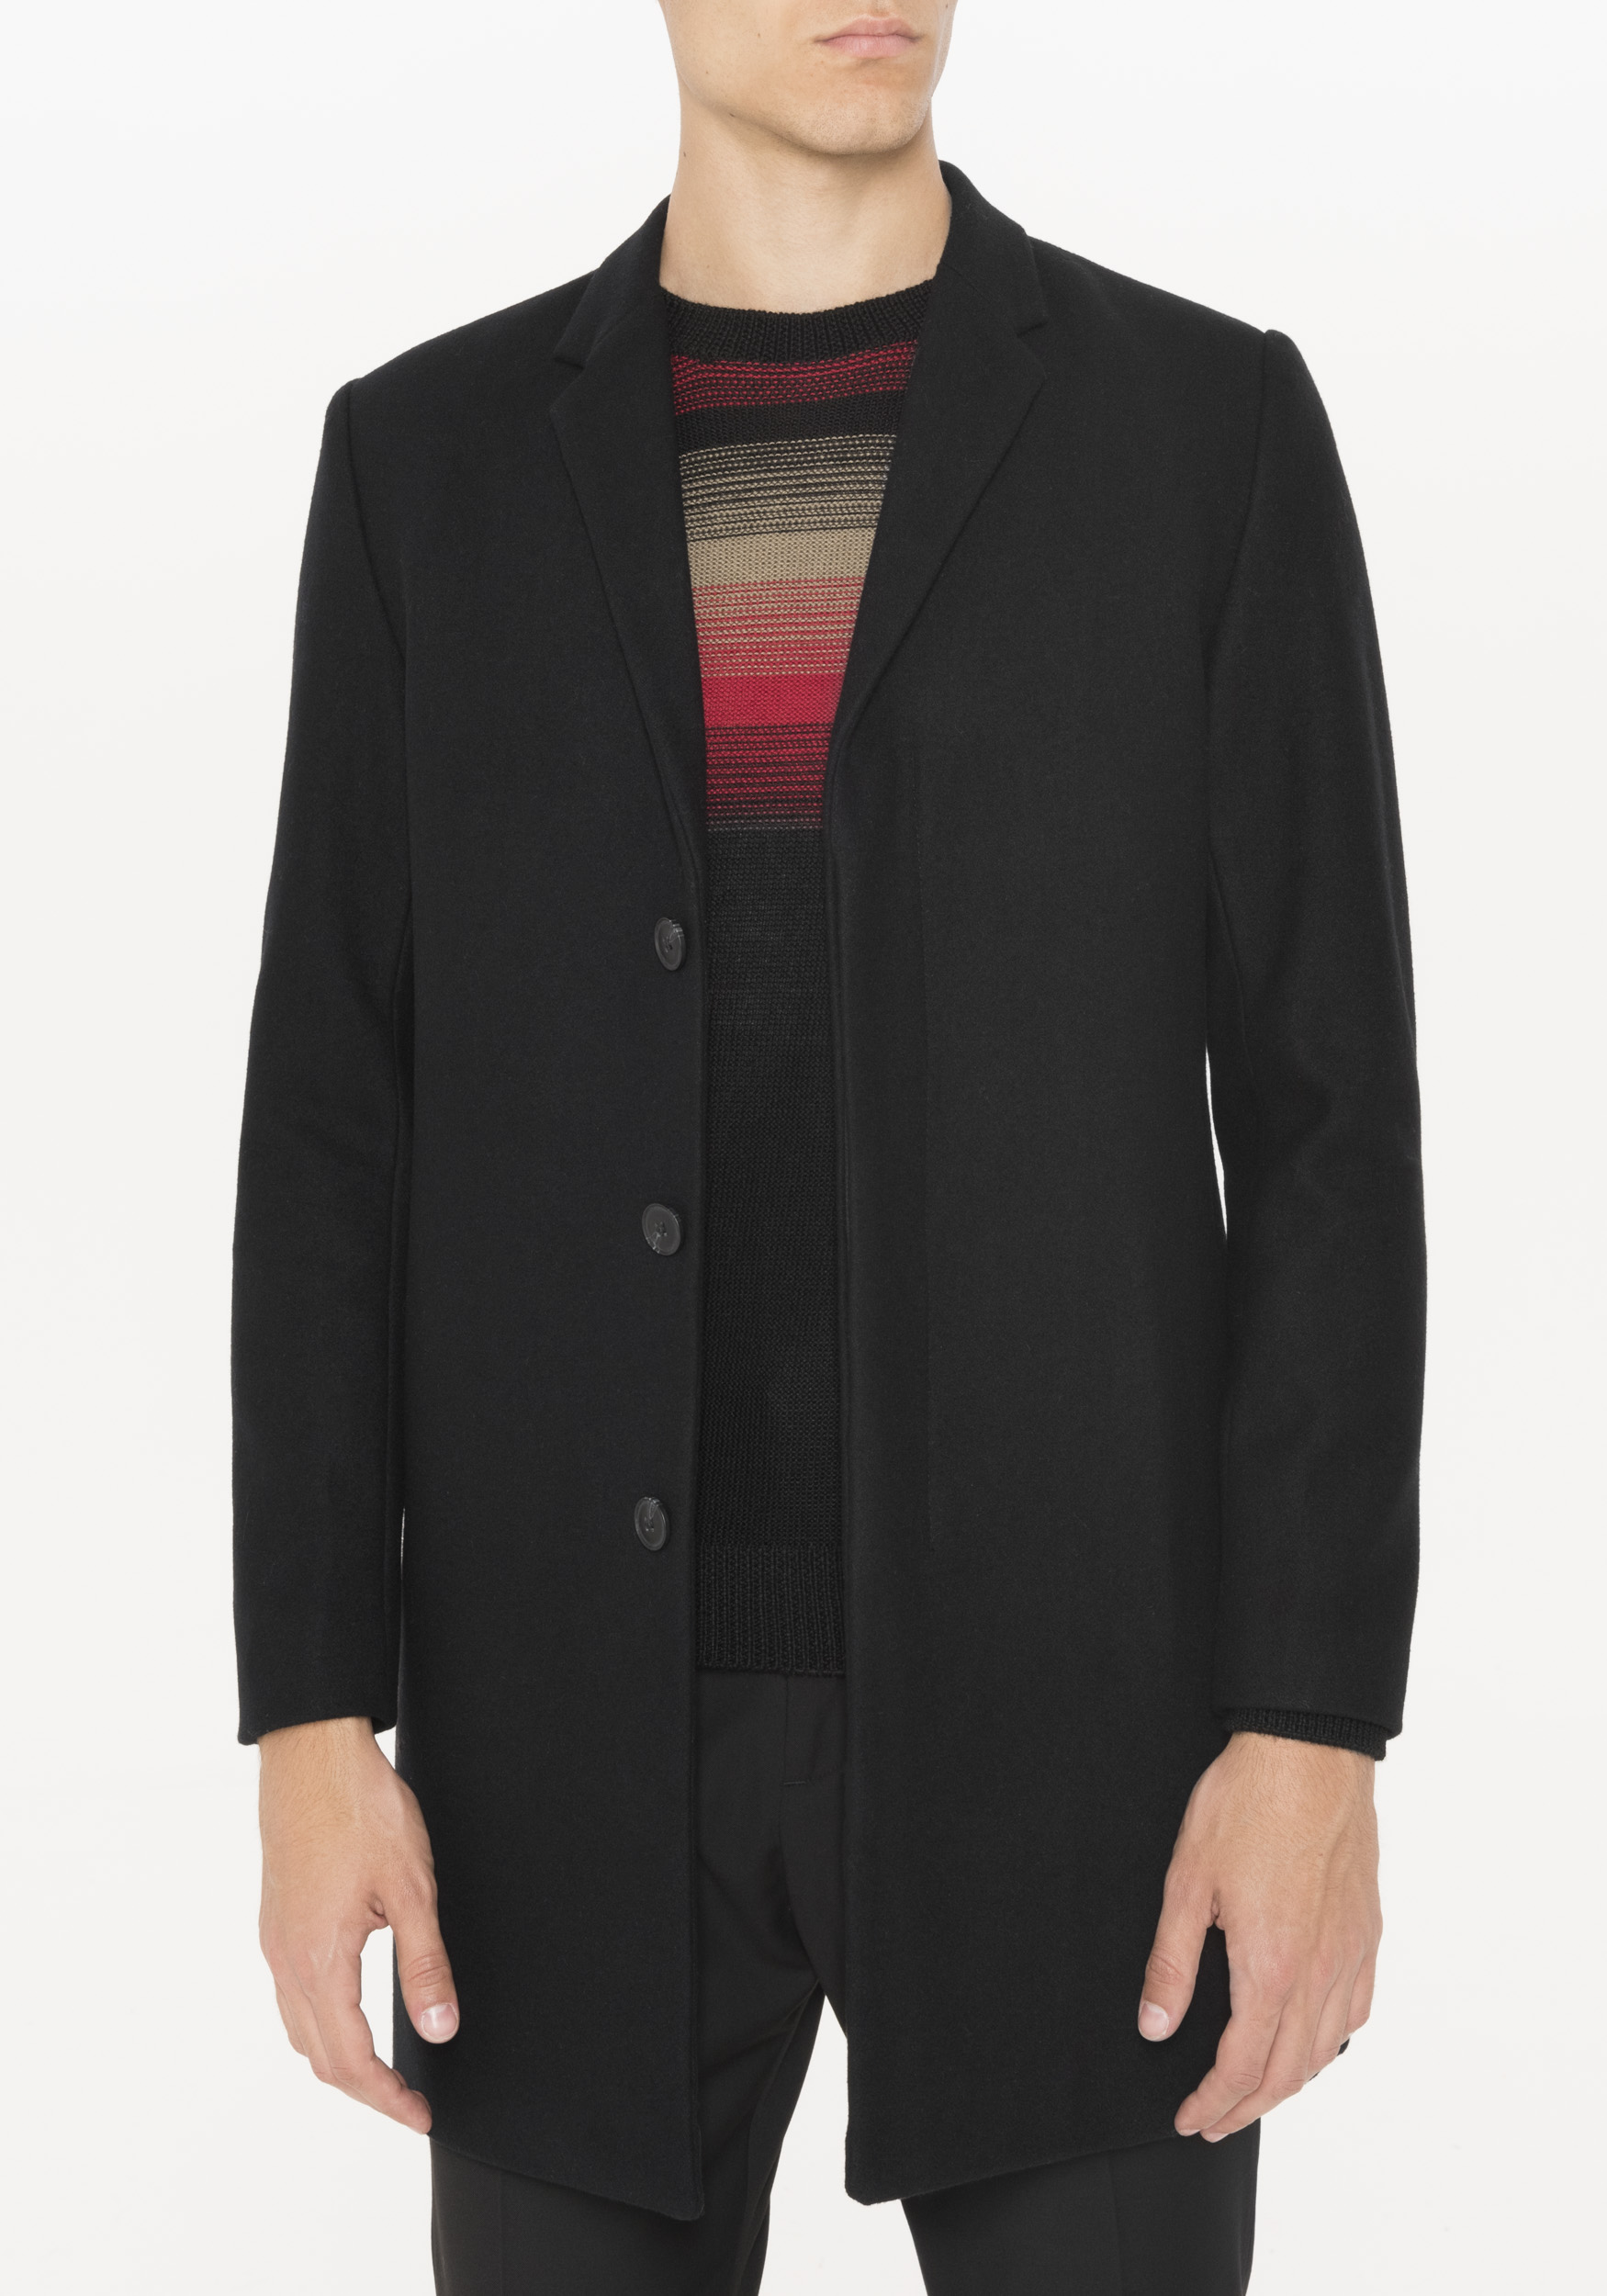 Black Overcoat Men's